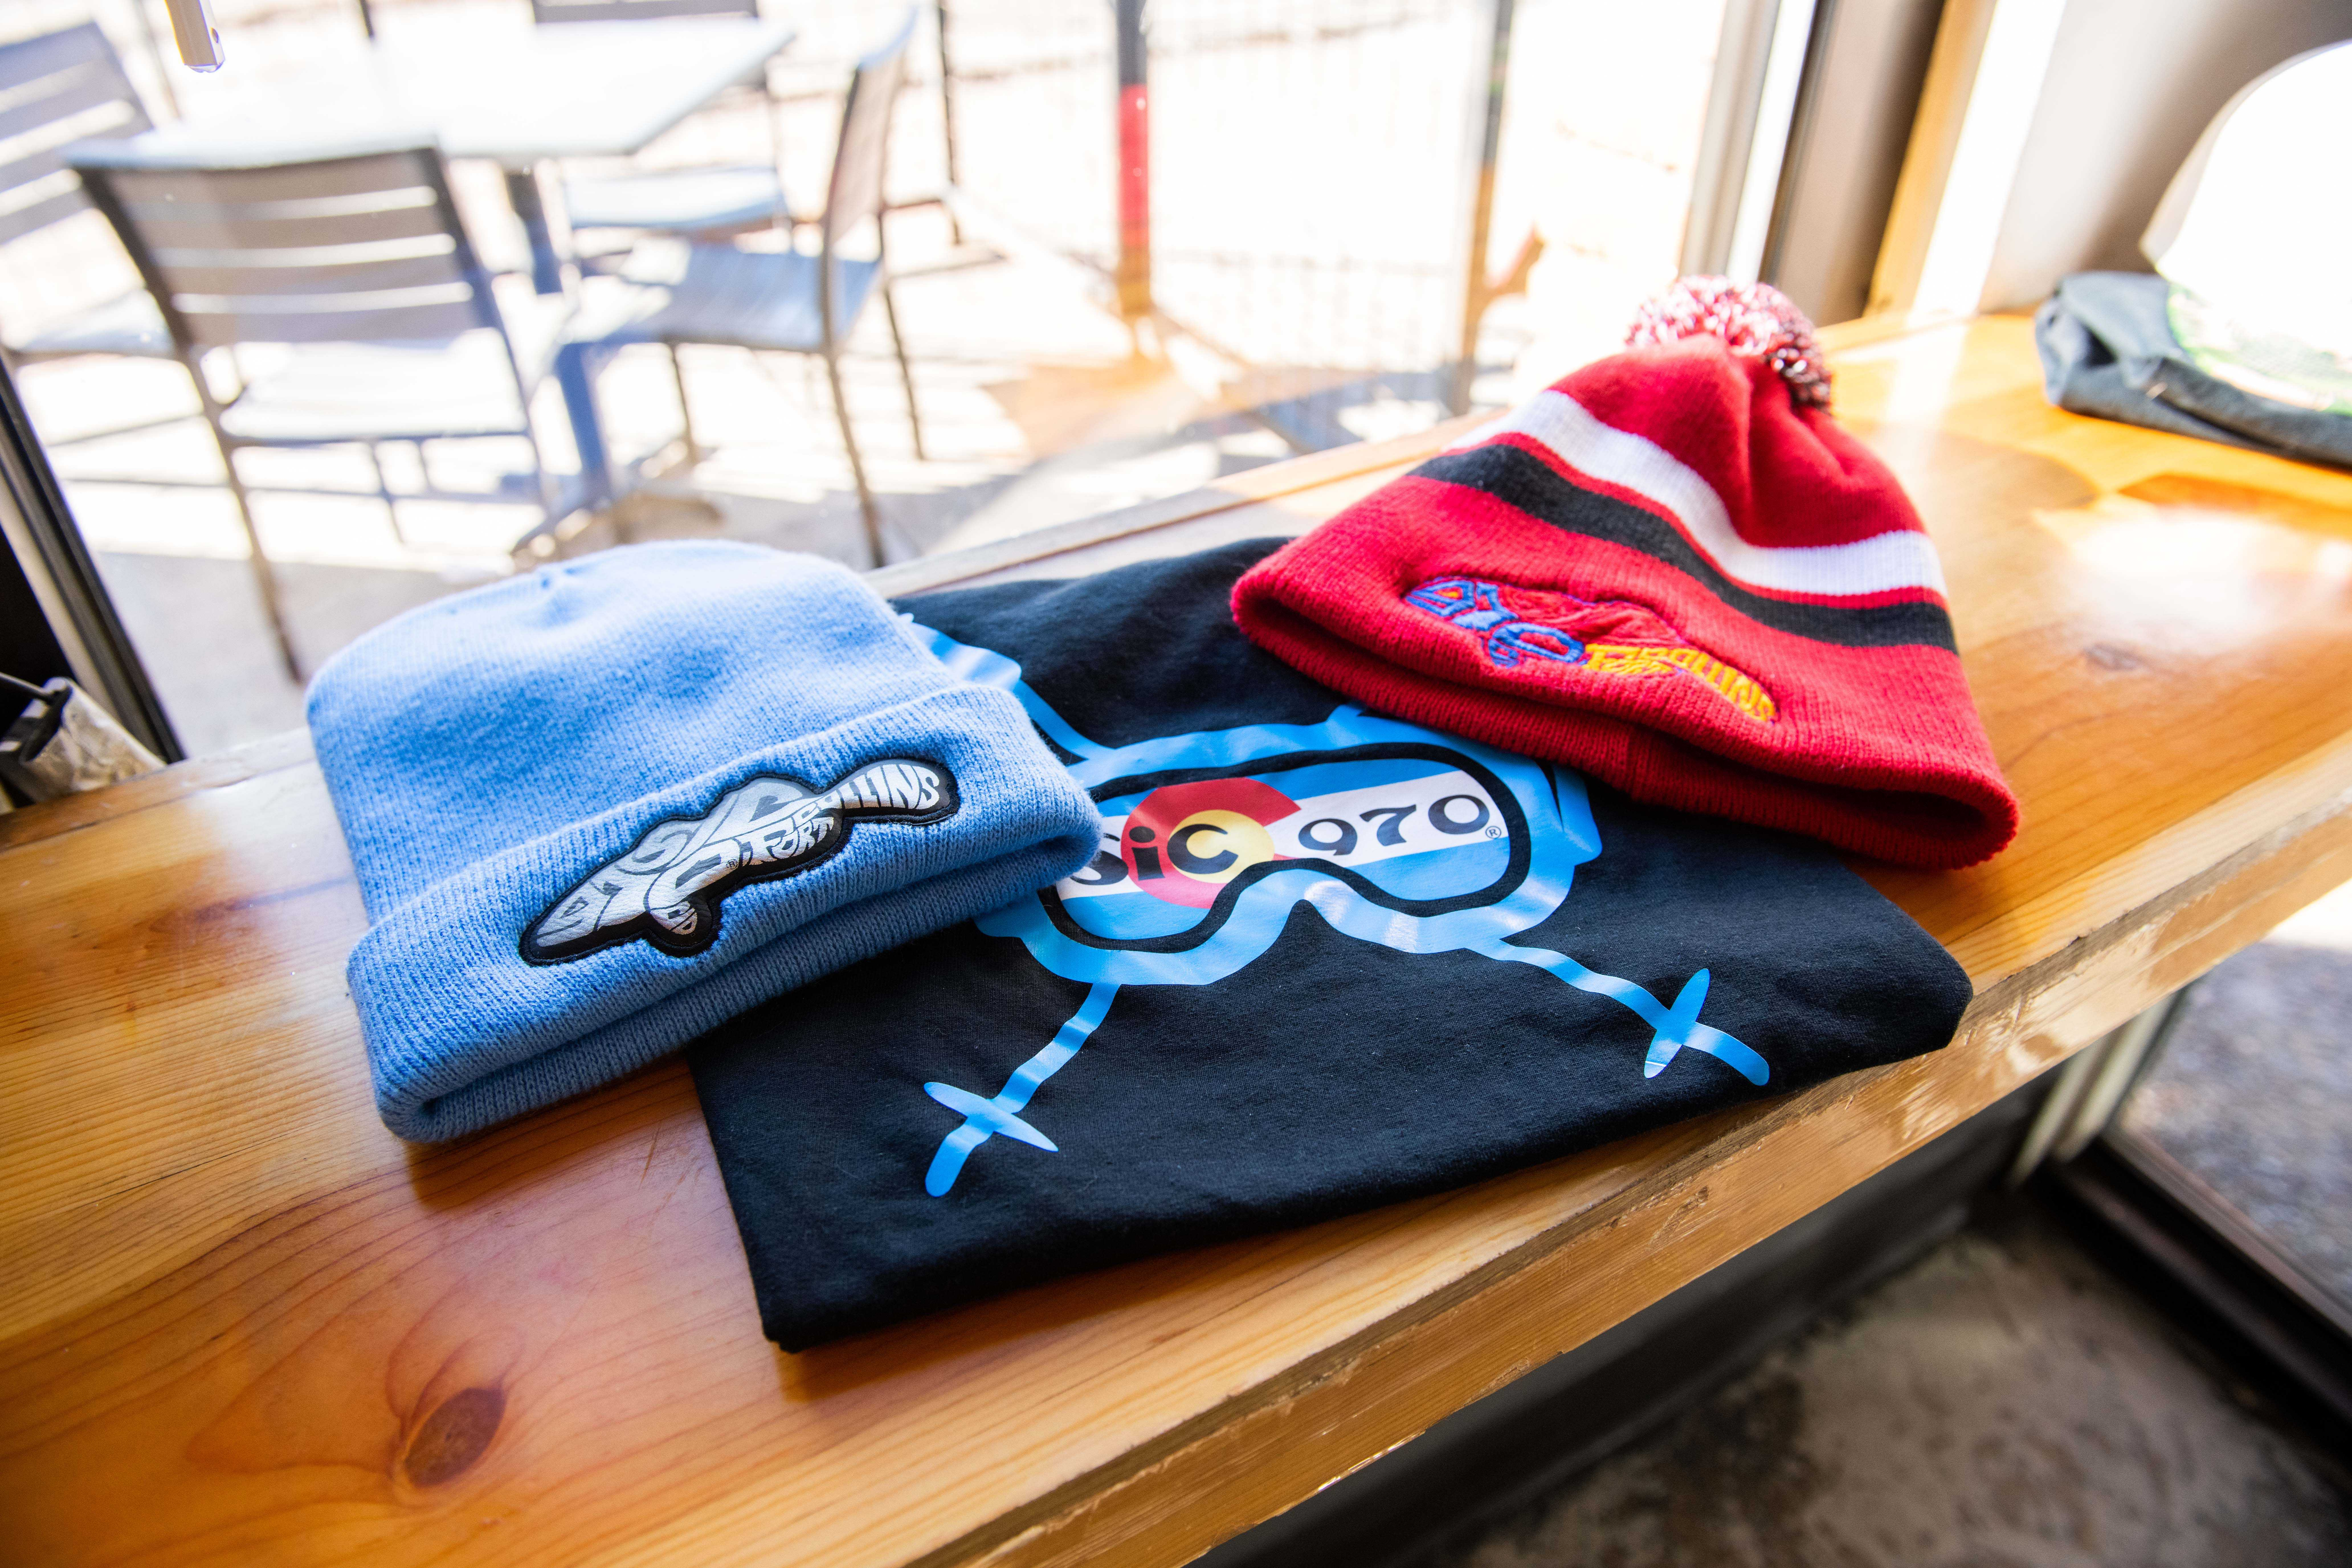 apparel and beanies from Sic970